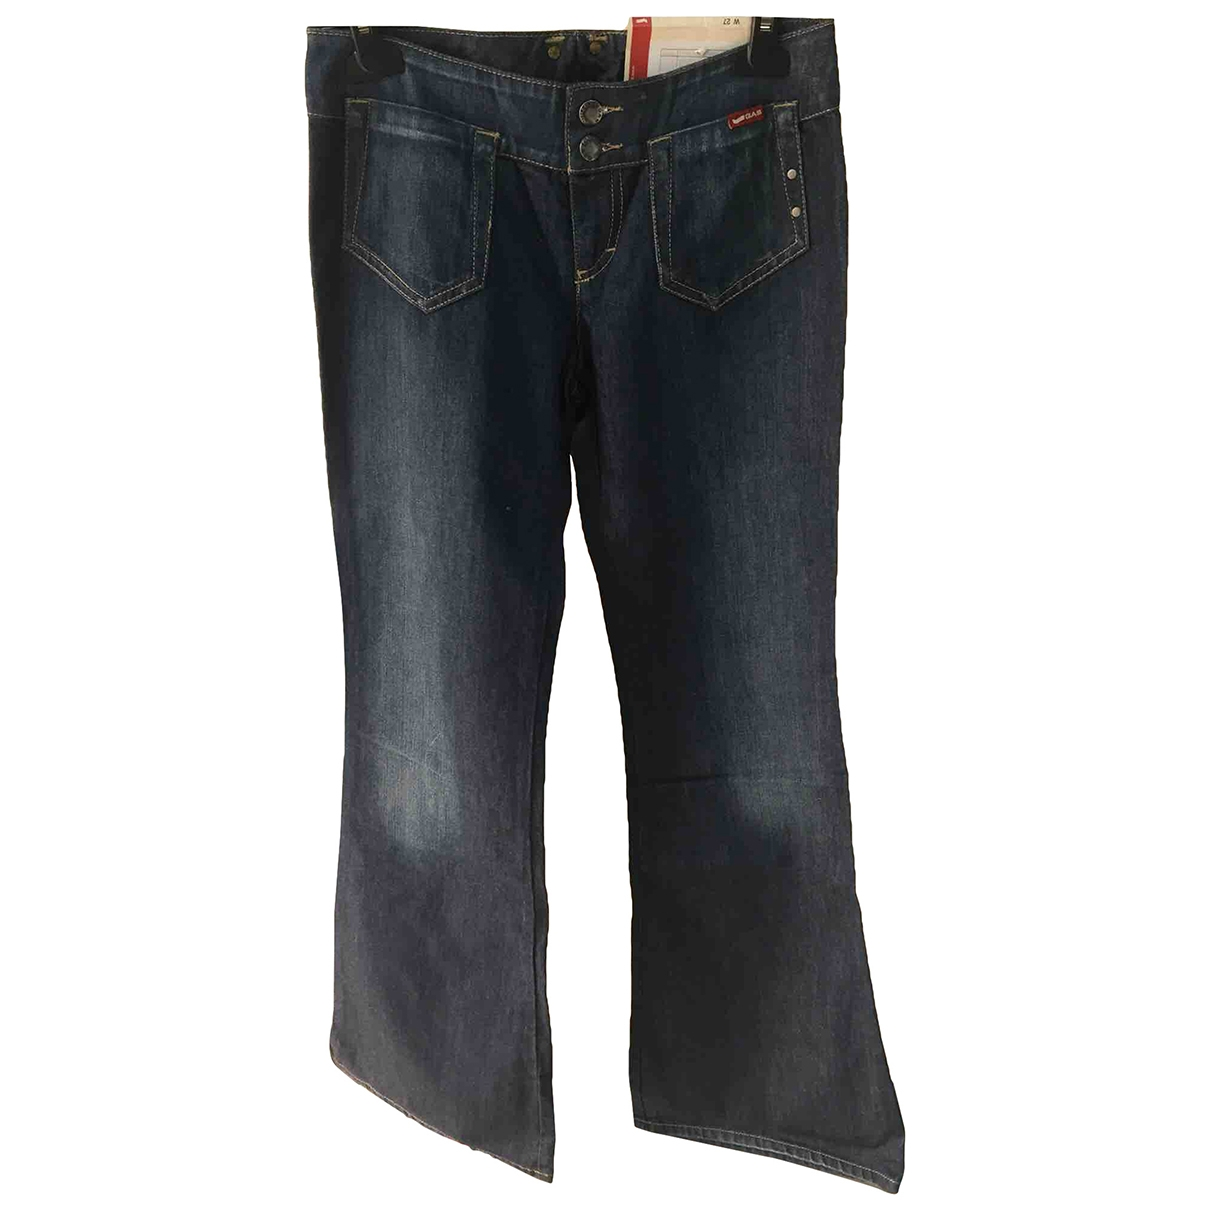 Gas \N Blue Denim - Jeans Jeans for Women 27 US